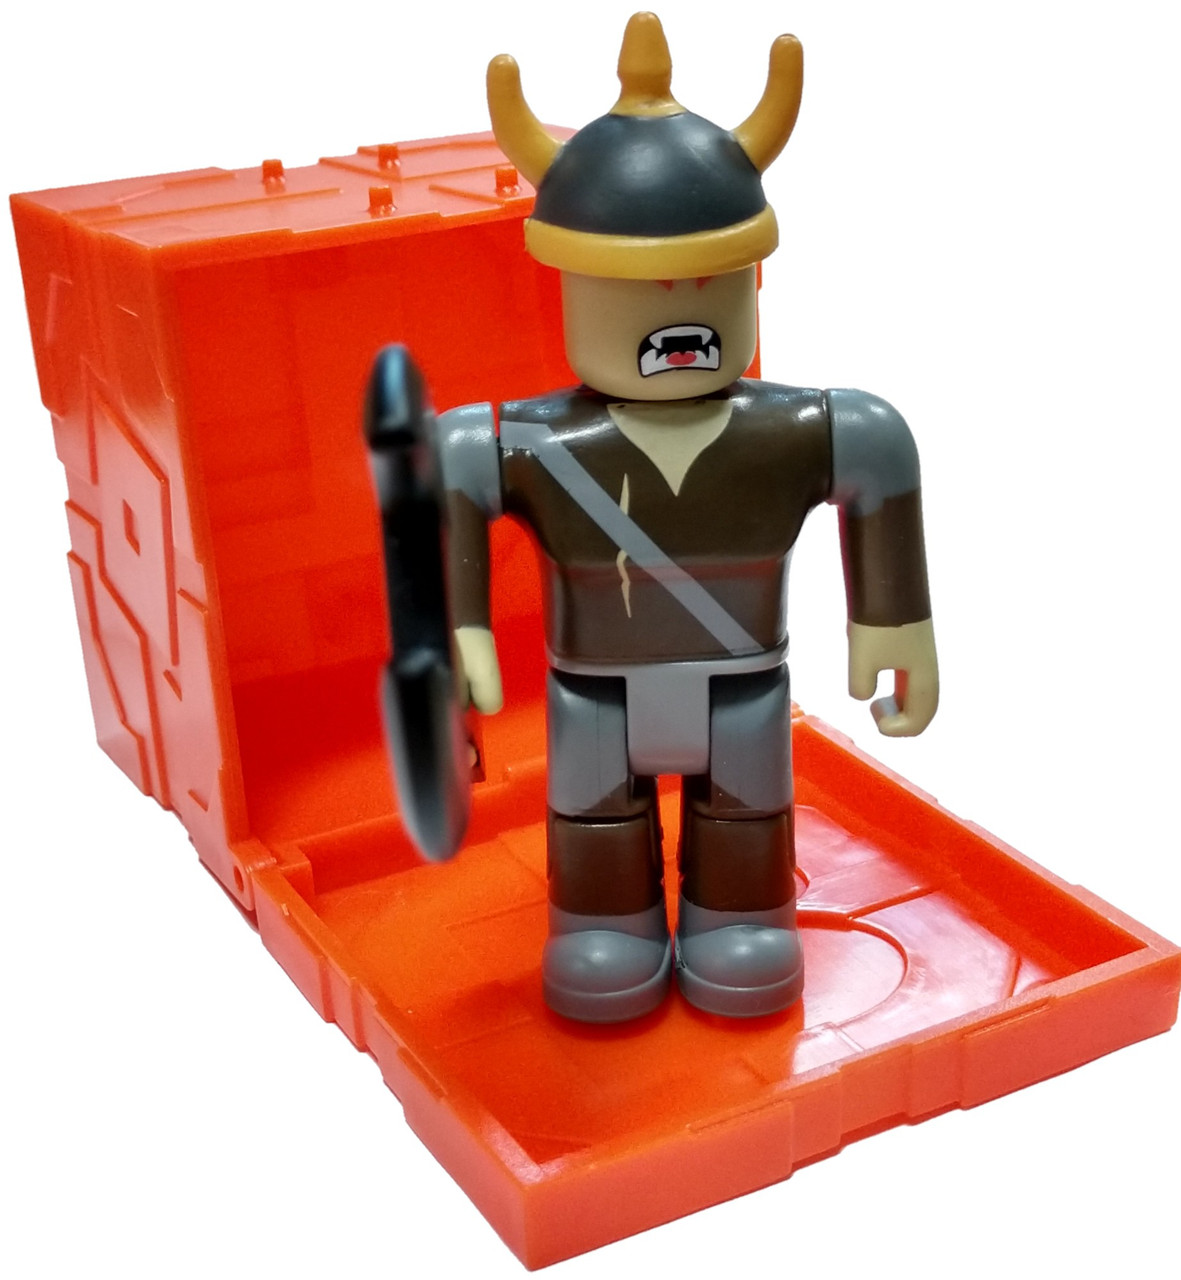 Roblox Series 6 Summoner Tycoon Viking 3 Mini Figure With Orange